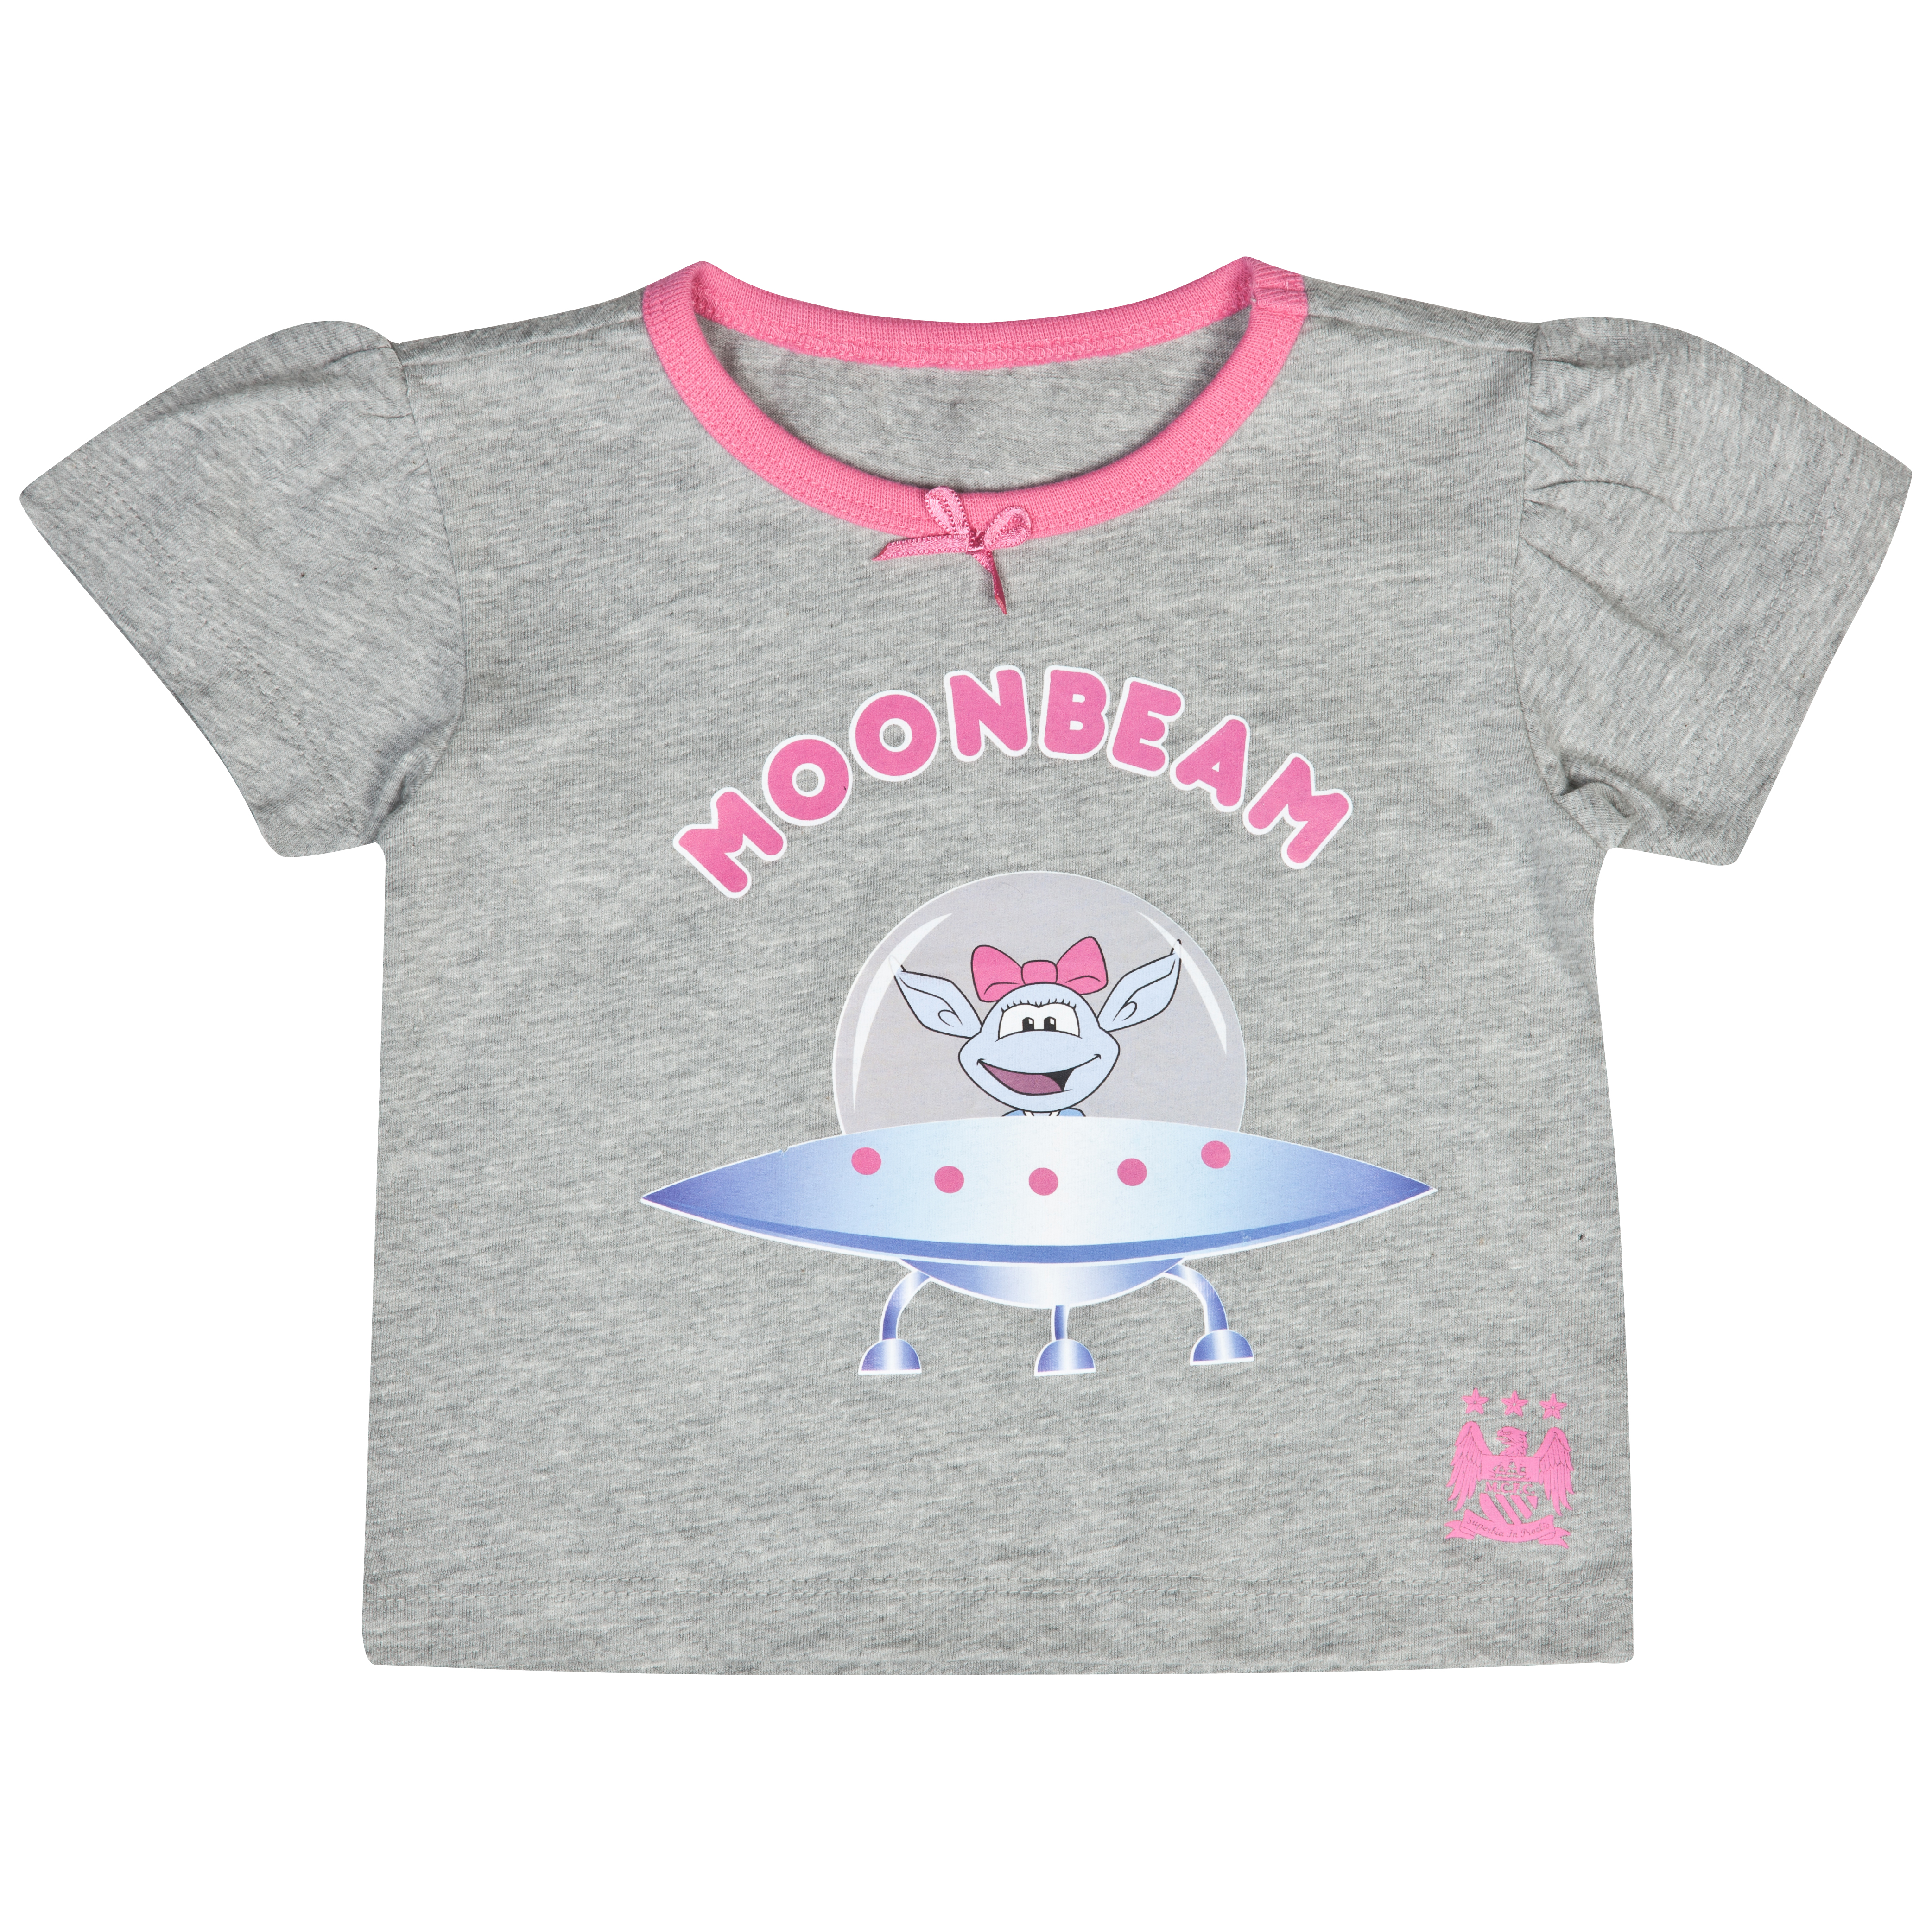 Manchester City Moonbeam T-Shirt	 - Grey/Pink